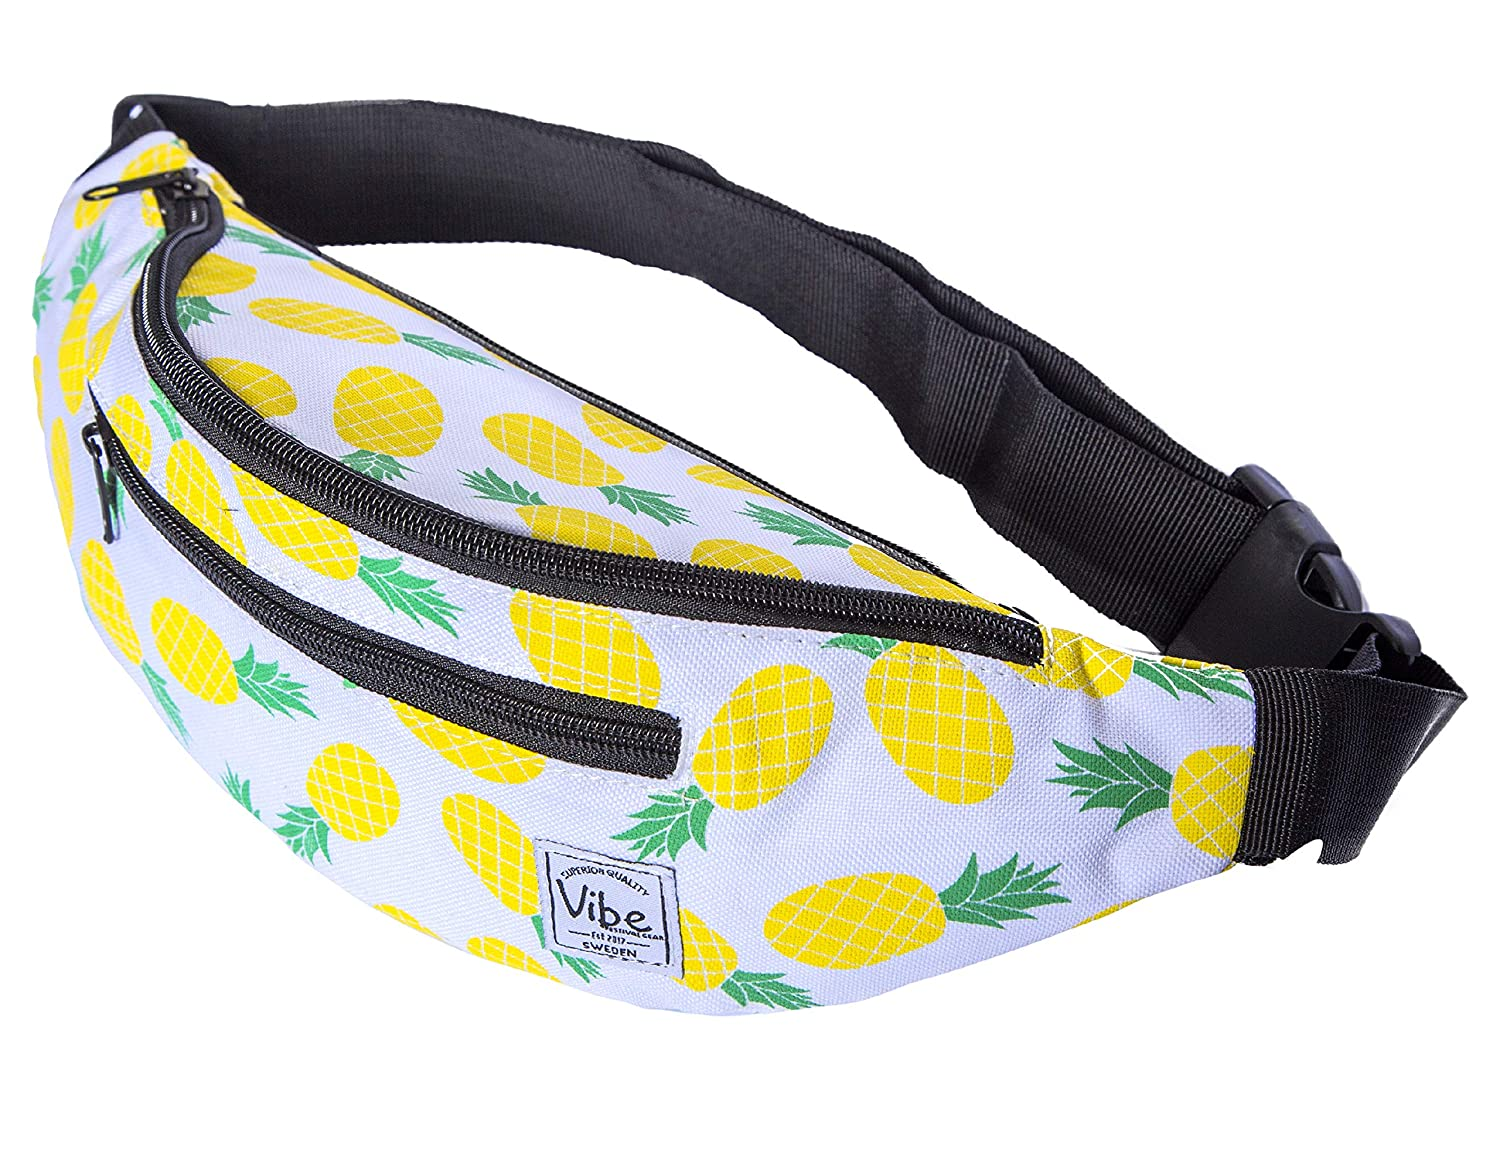 Vibe Fanny Pack Cute Fashion Black Pineapple or Shiny Holographic Silver Gold Belt Waist Bag Bum Bag Purse for Festival Rave Party Travel for Men Women and Teens